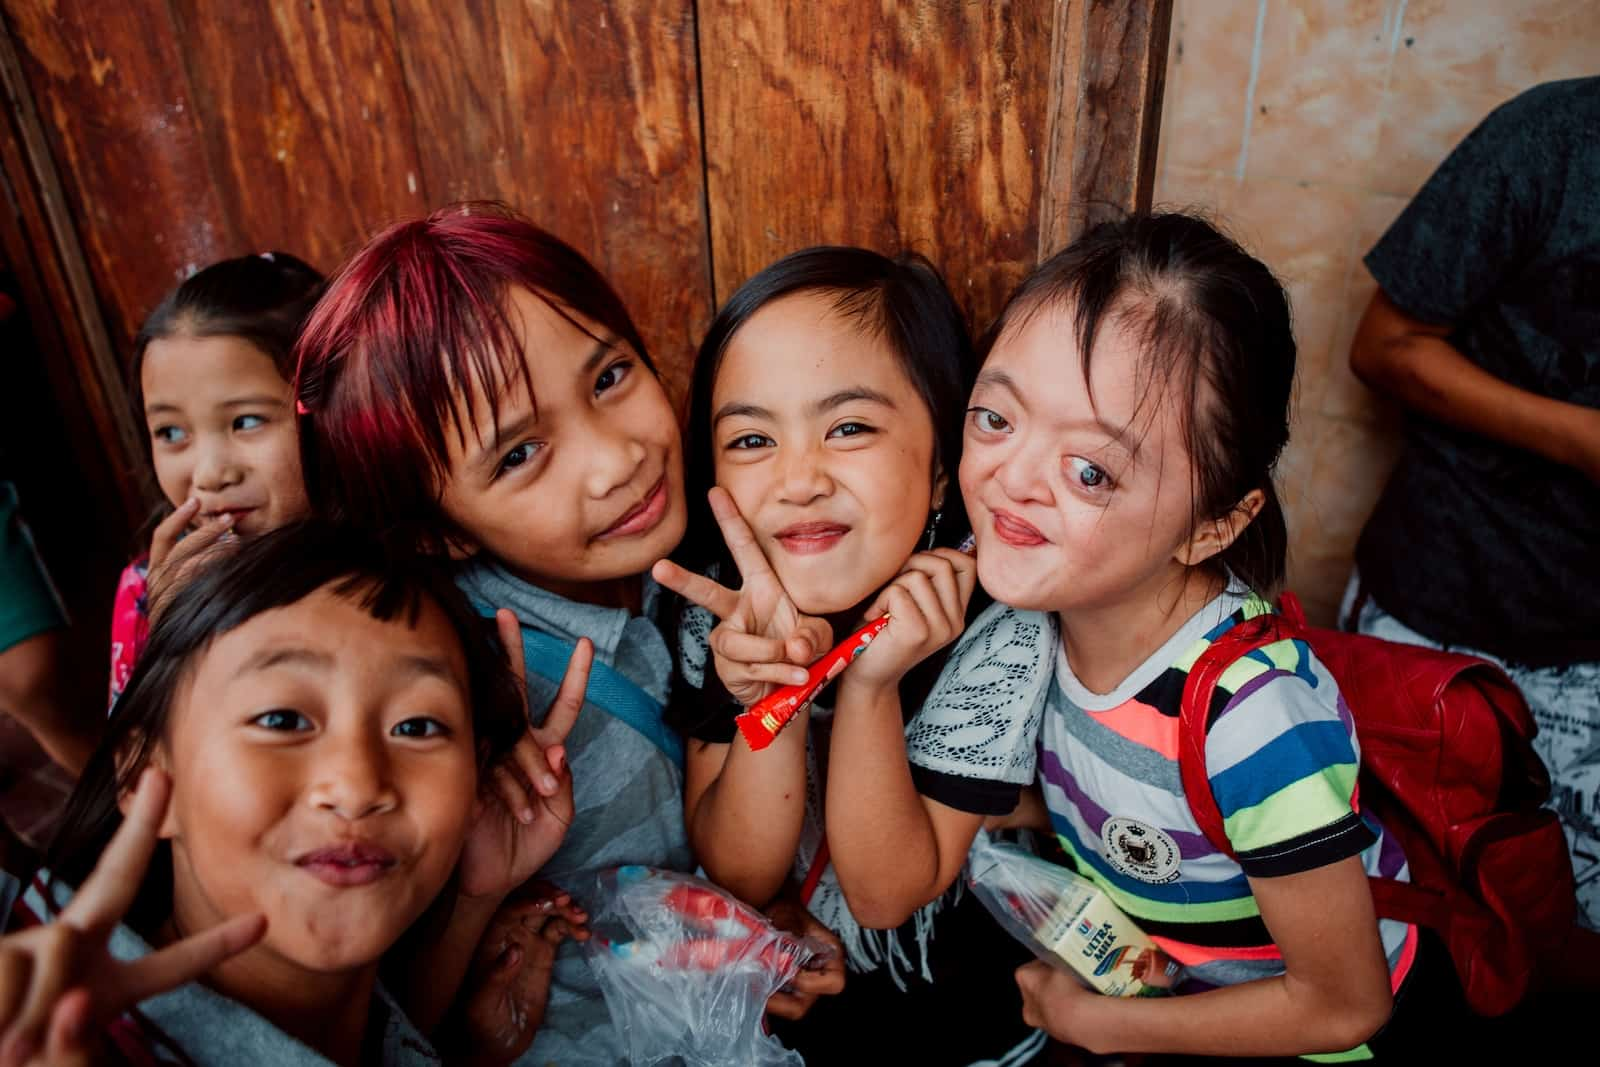 Four young girls, including one with Apert Syndrome, smile at the camera, making peace signs.